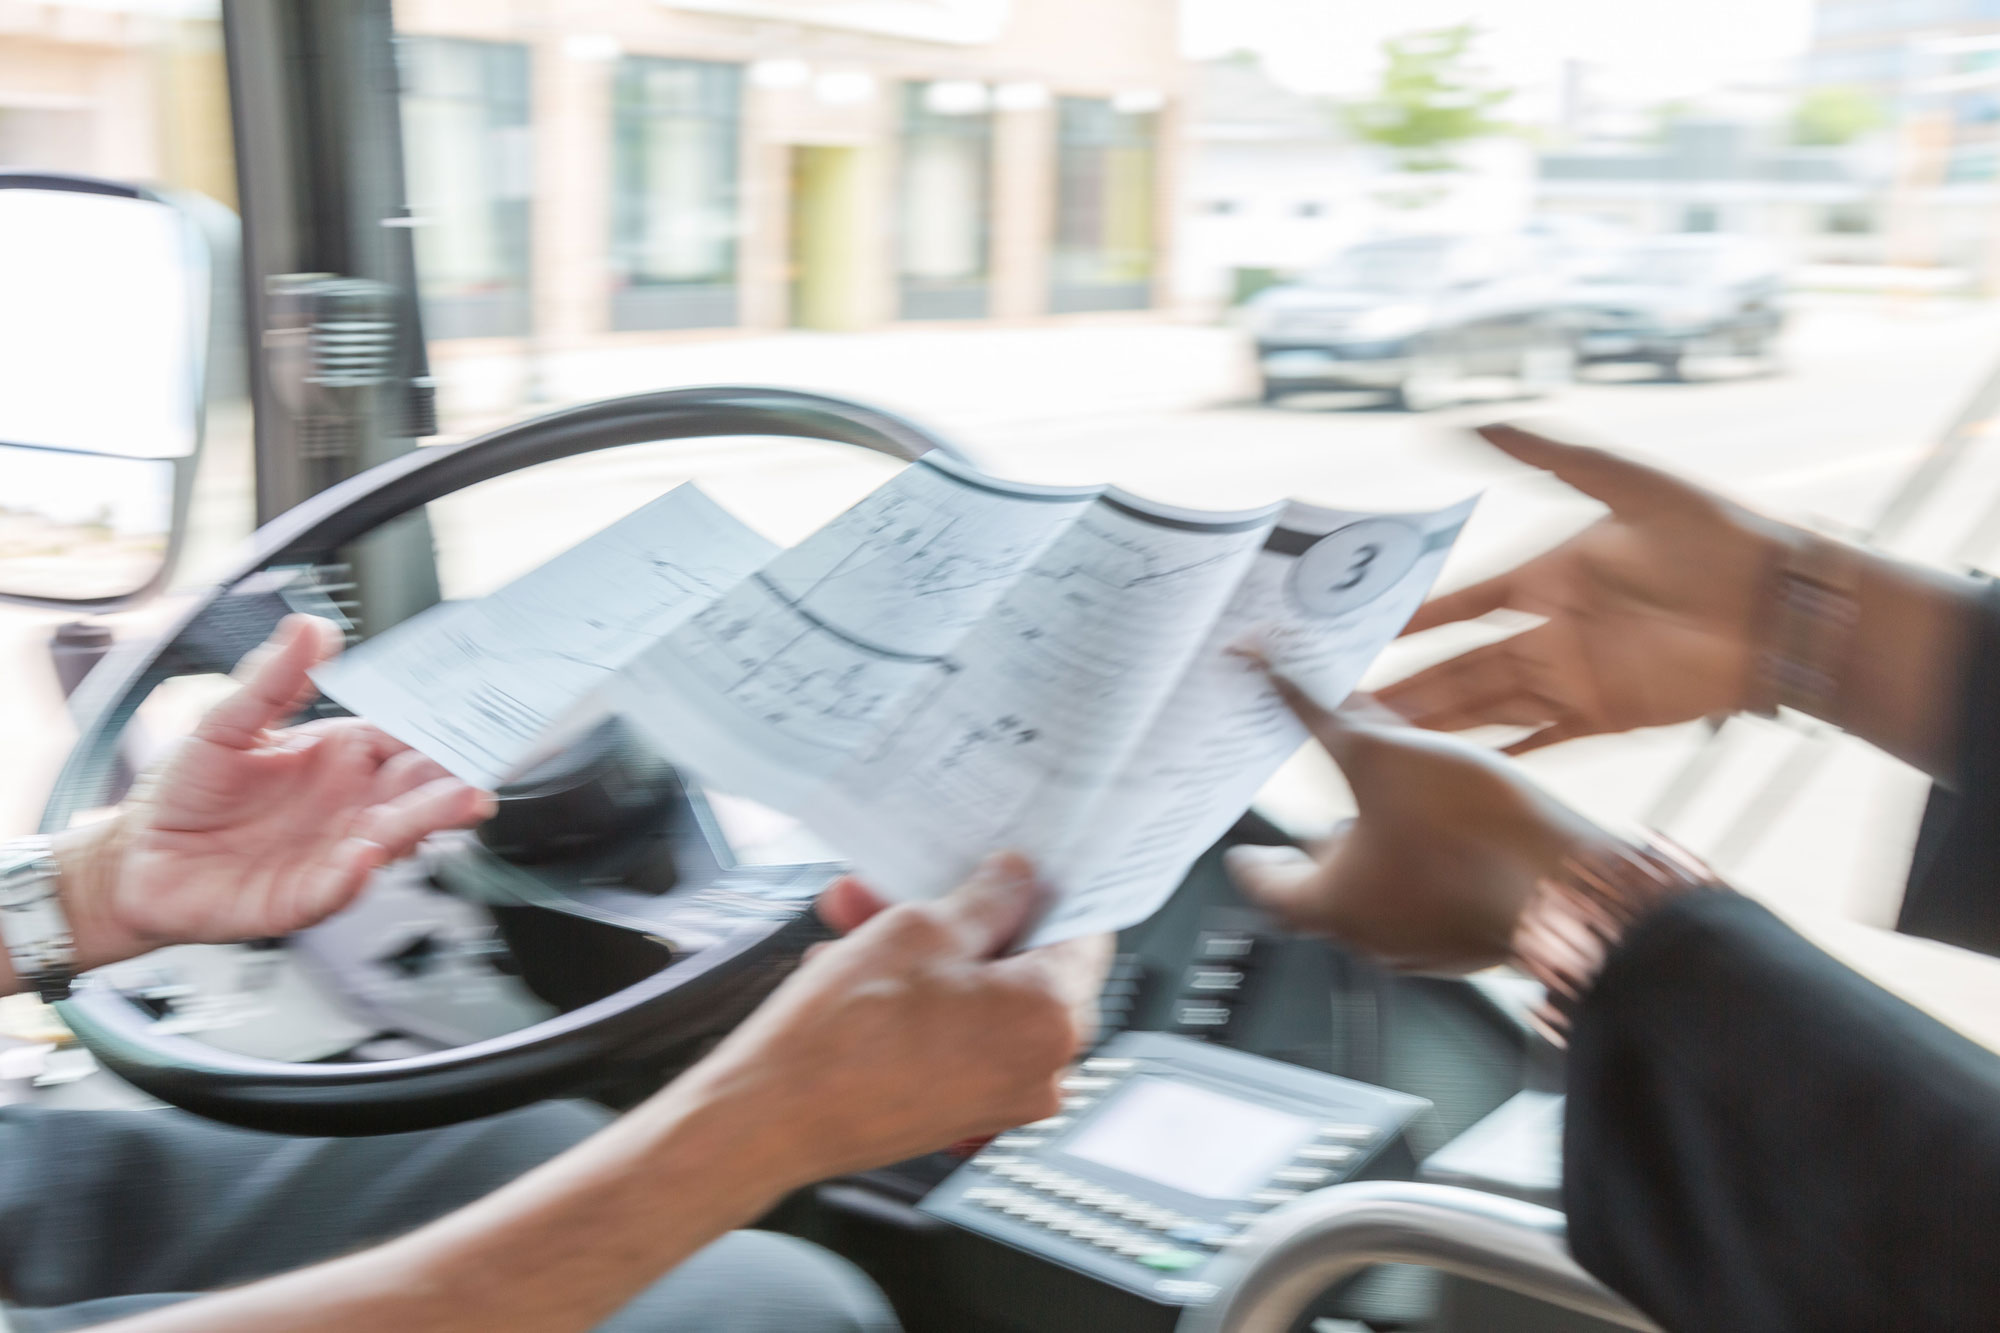 IMAGE: Metro Bus Driver Helping Passenger with Route Map